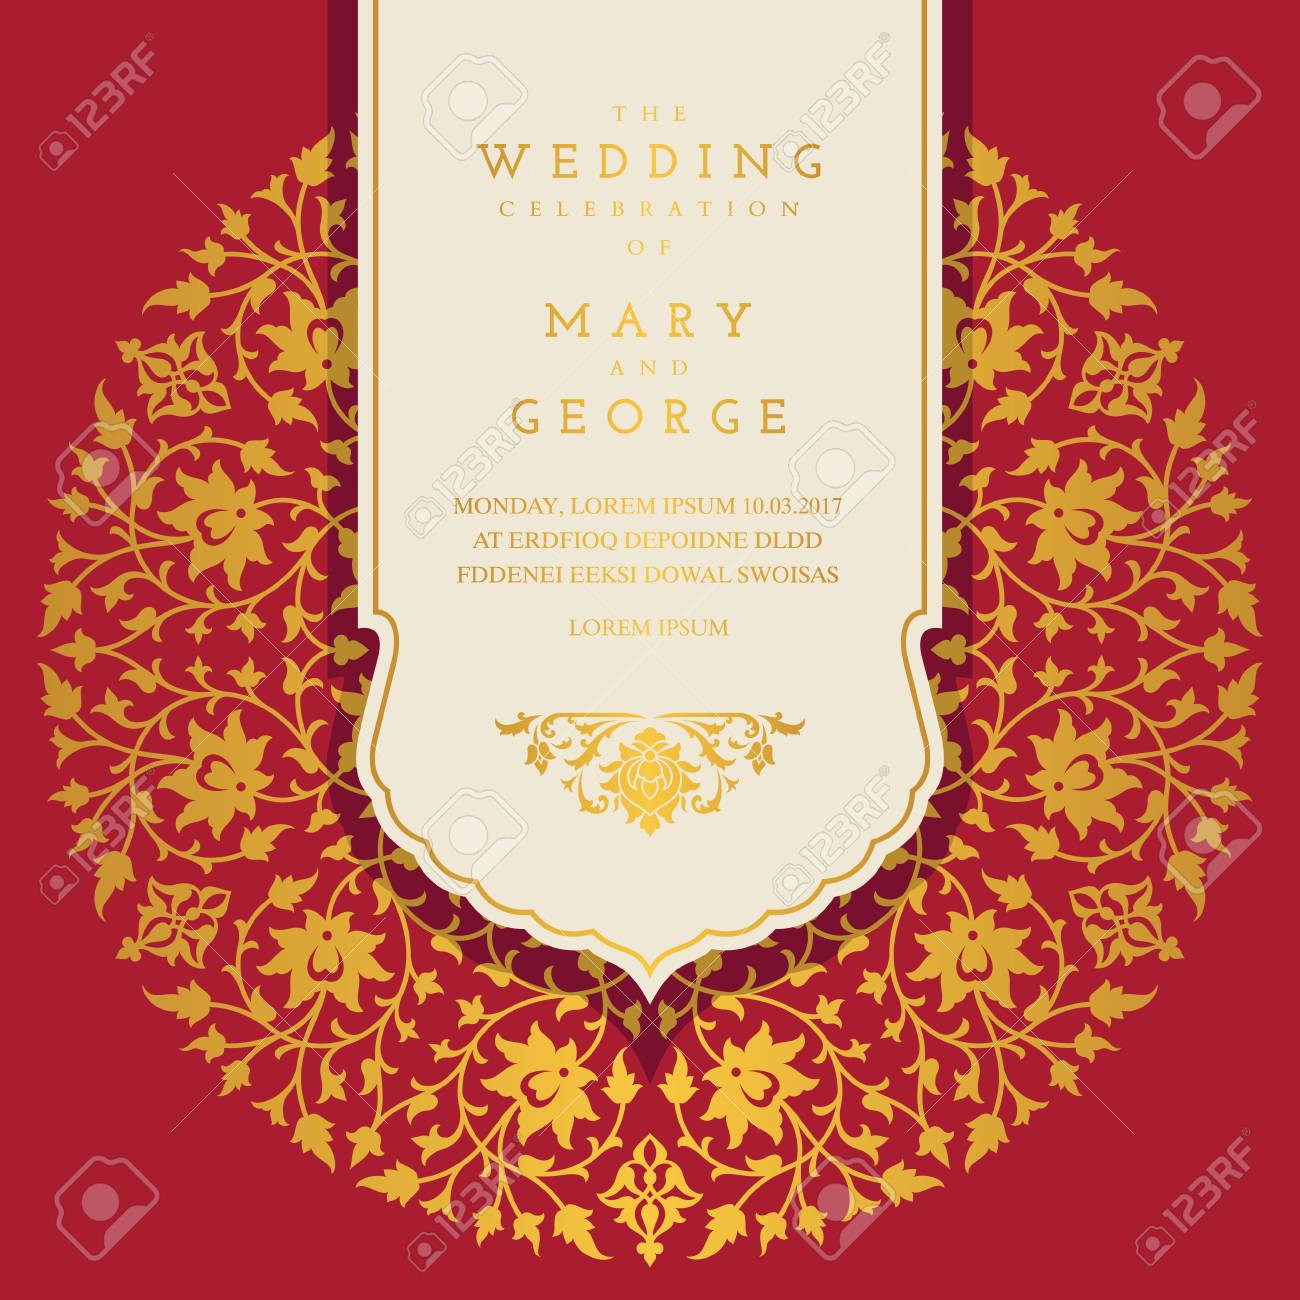 Vintage Wedding Invitation Card Template With Floral Background